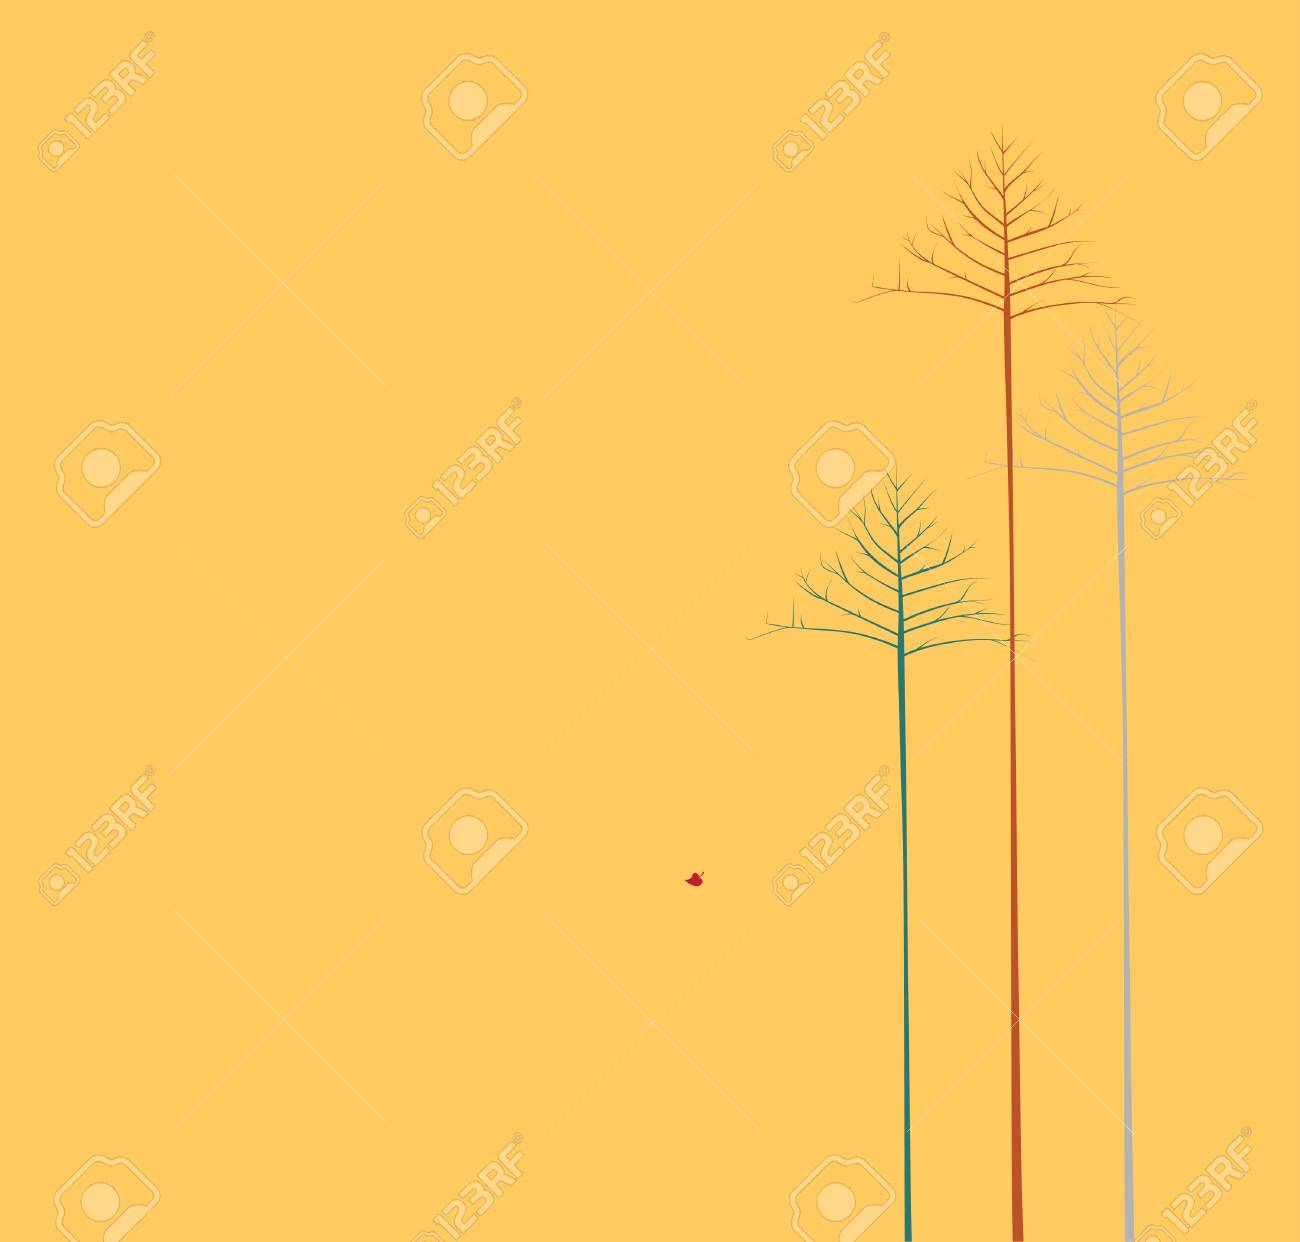 Vector illustration of   three lonely autumn trees on yellow background Stock Vector - 3524507